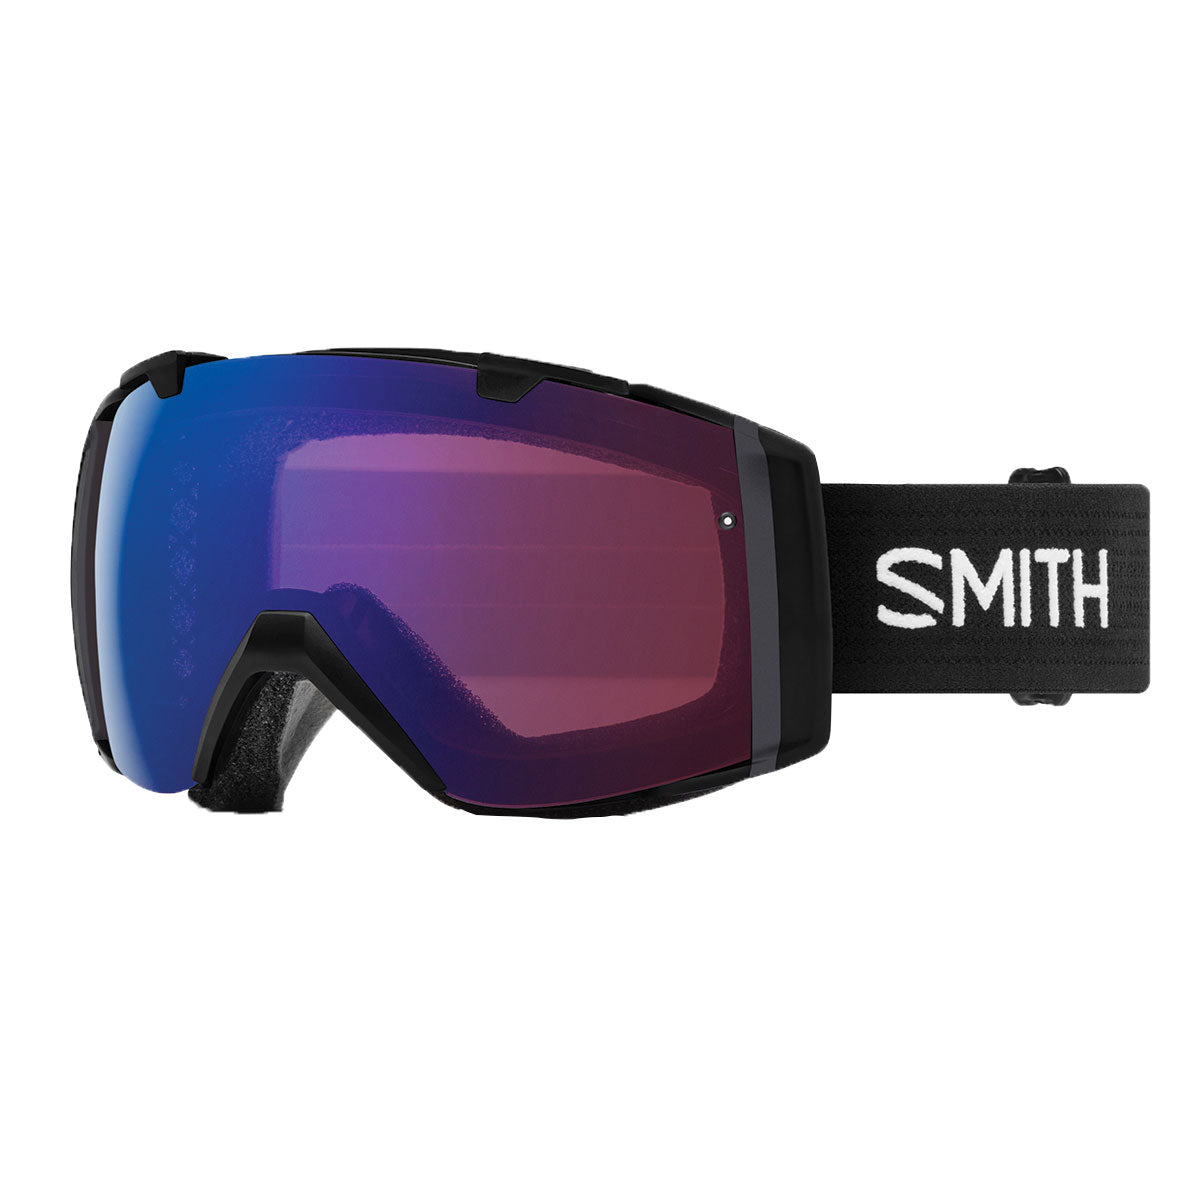 Smith Optics I/O Asian Fit Chromapop Adult Snow Goggles-II7CPZBK18